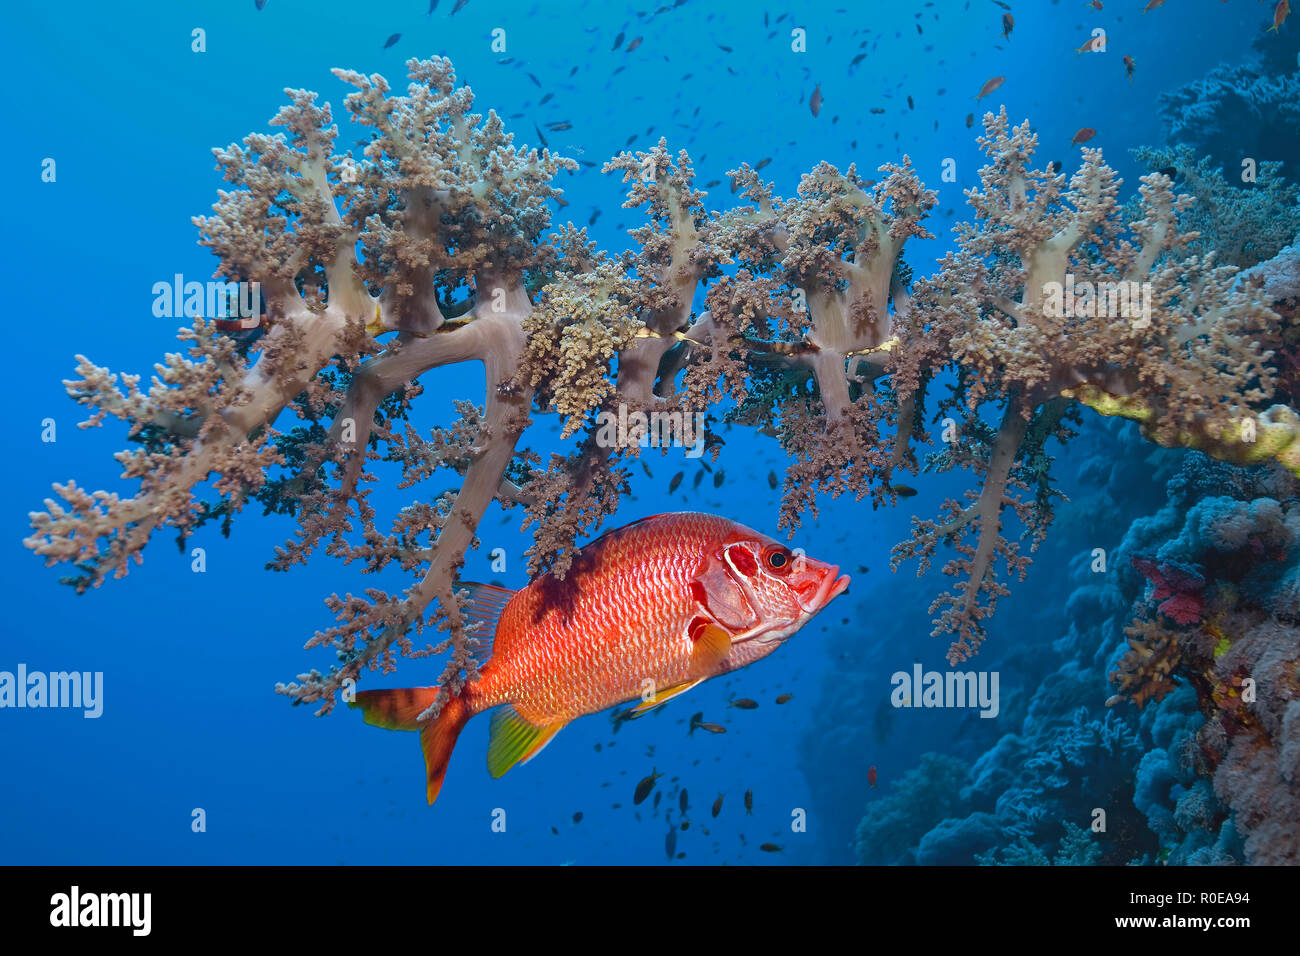 Squirrelfish (Sargocentron spiniferum) under a soft-coral, Marsa Alam, Egypt - Stock Image